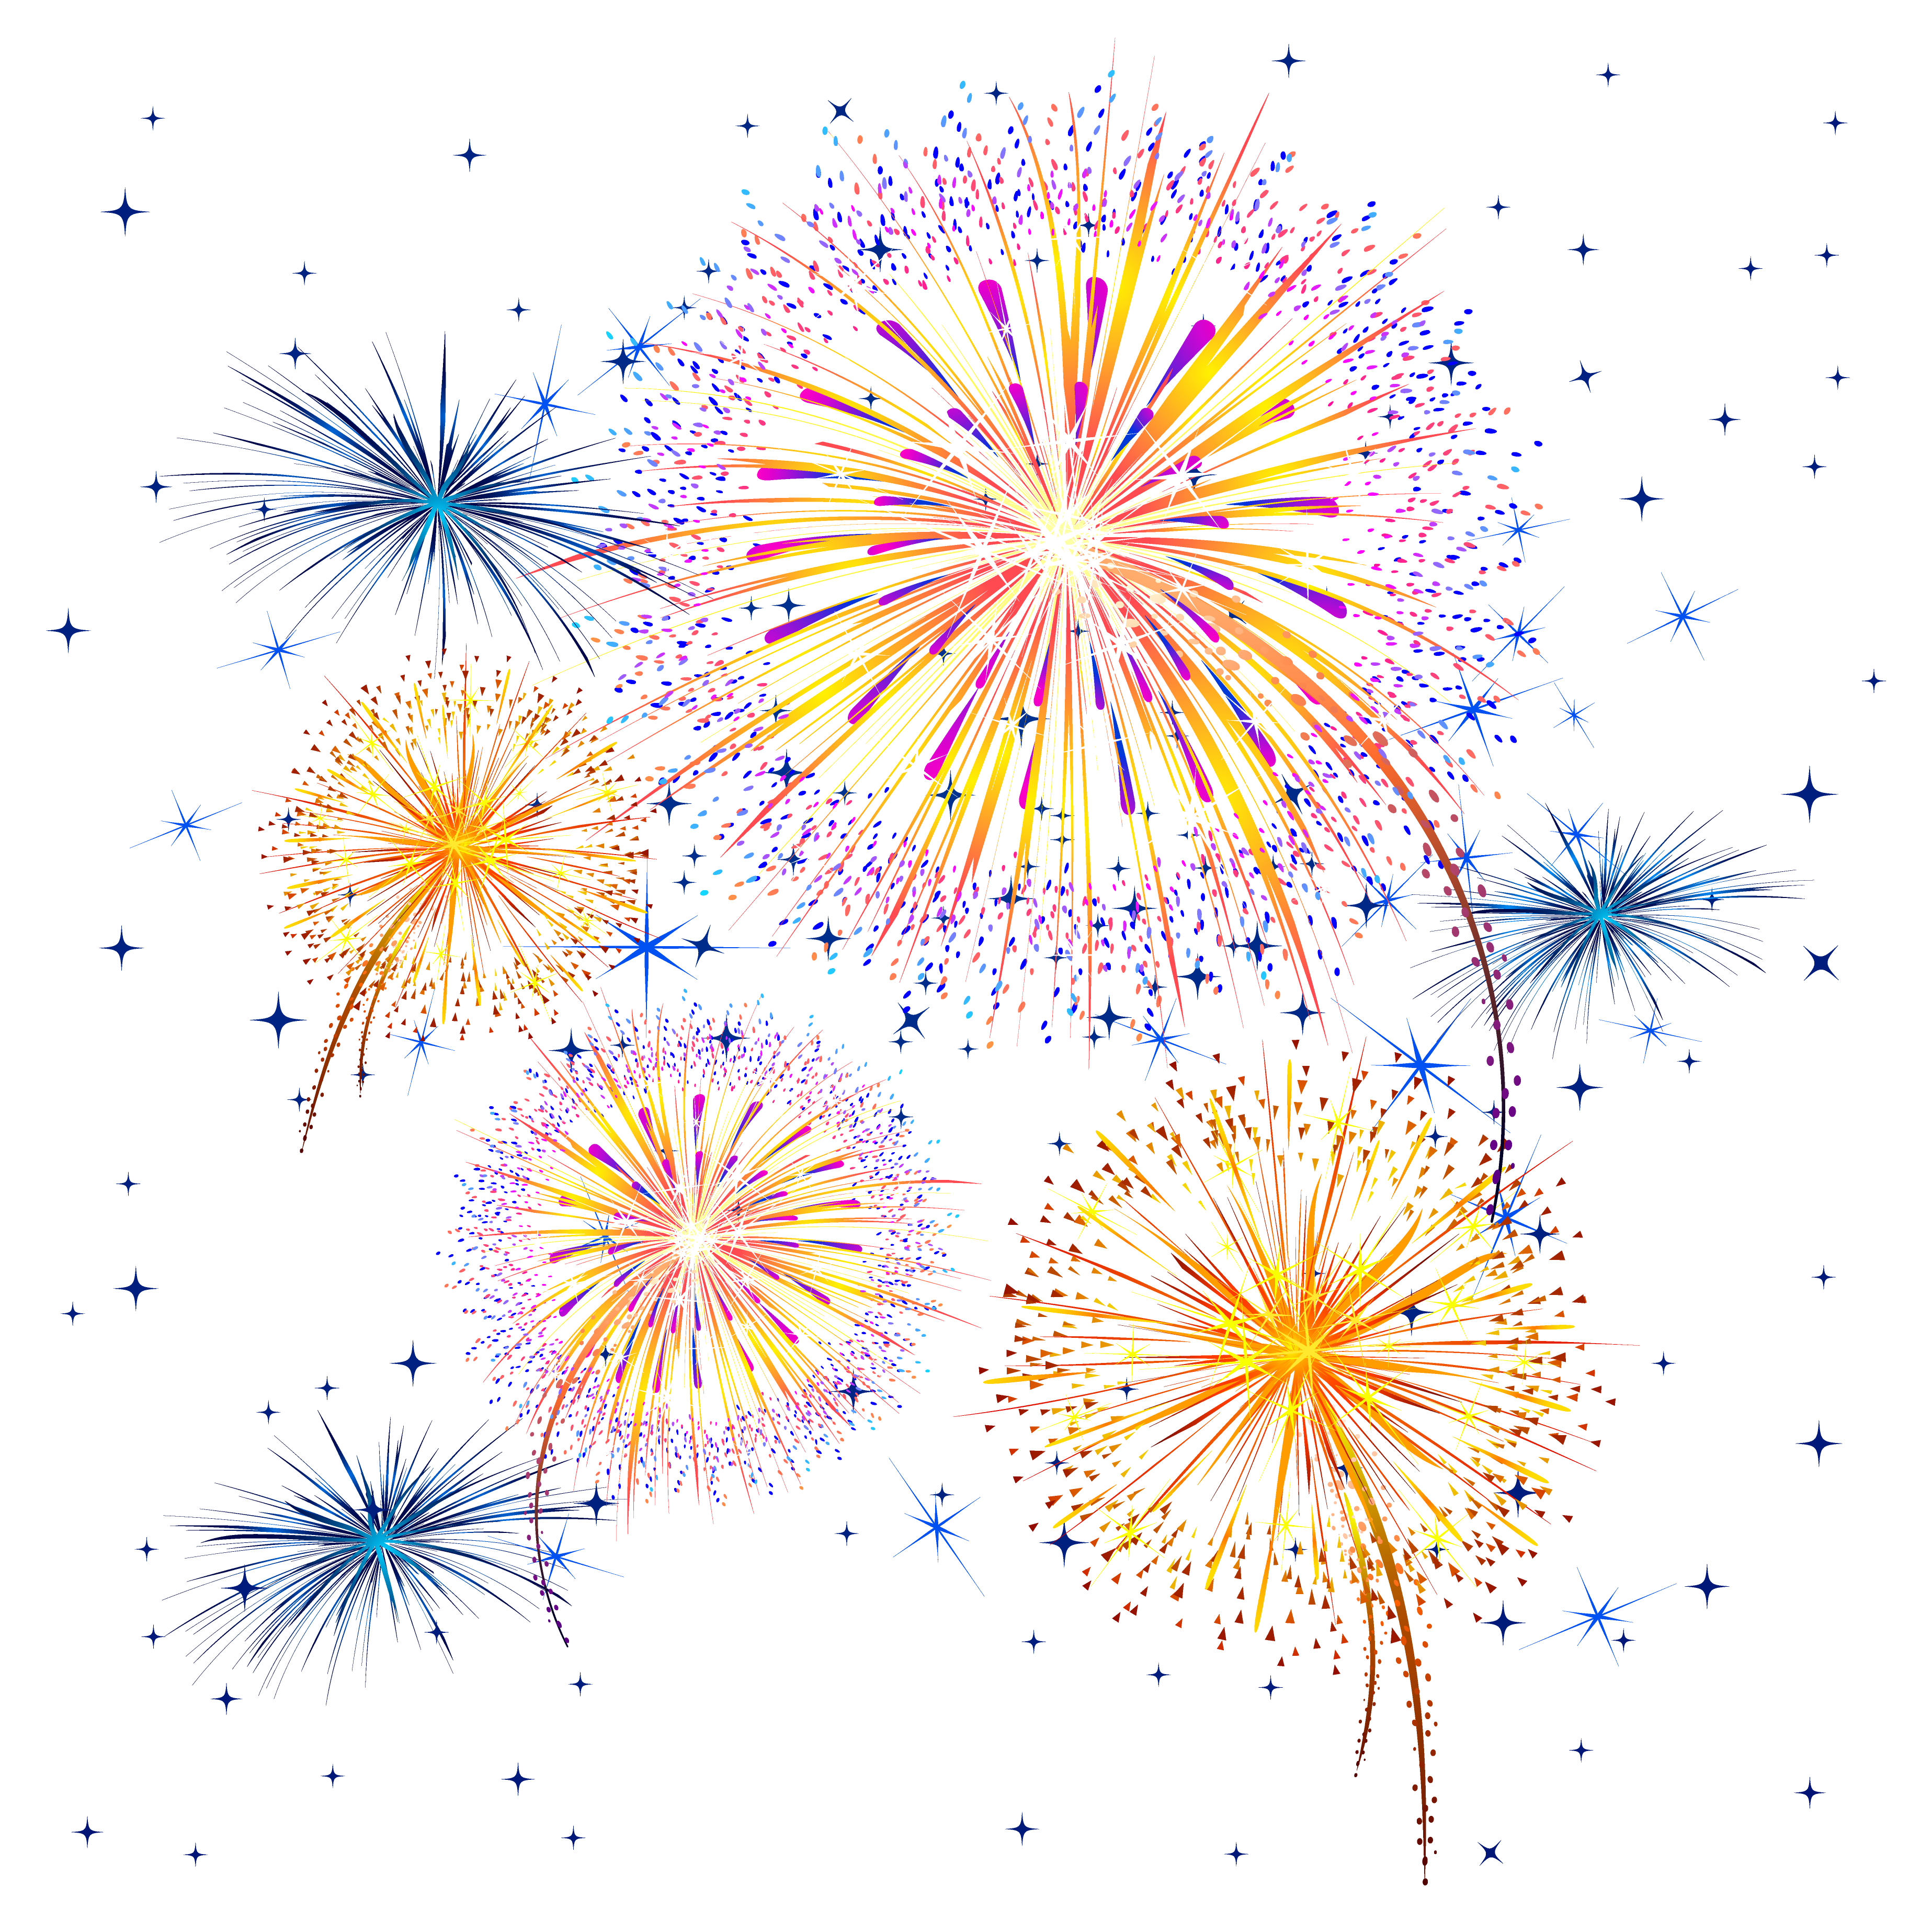 Working clipart quality work. Firework show png image